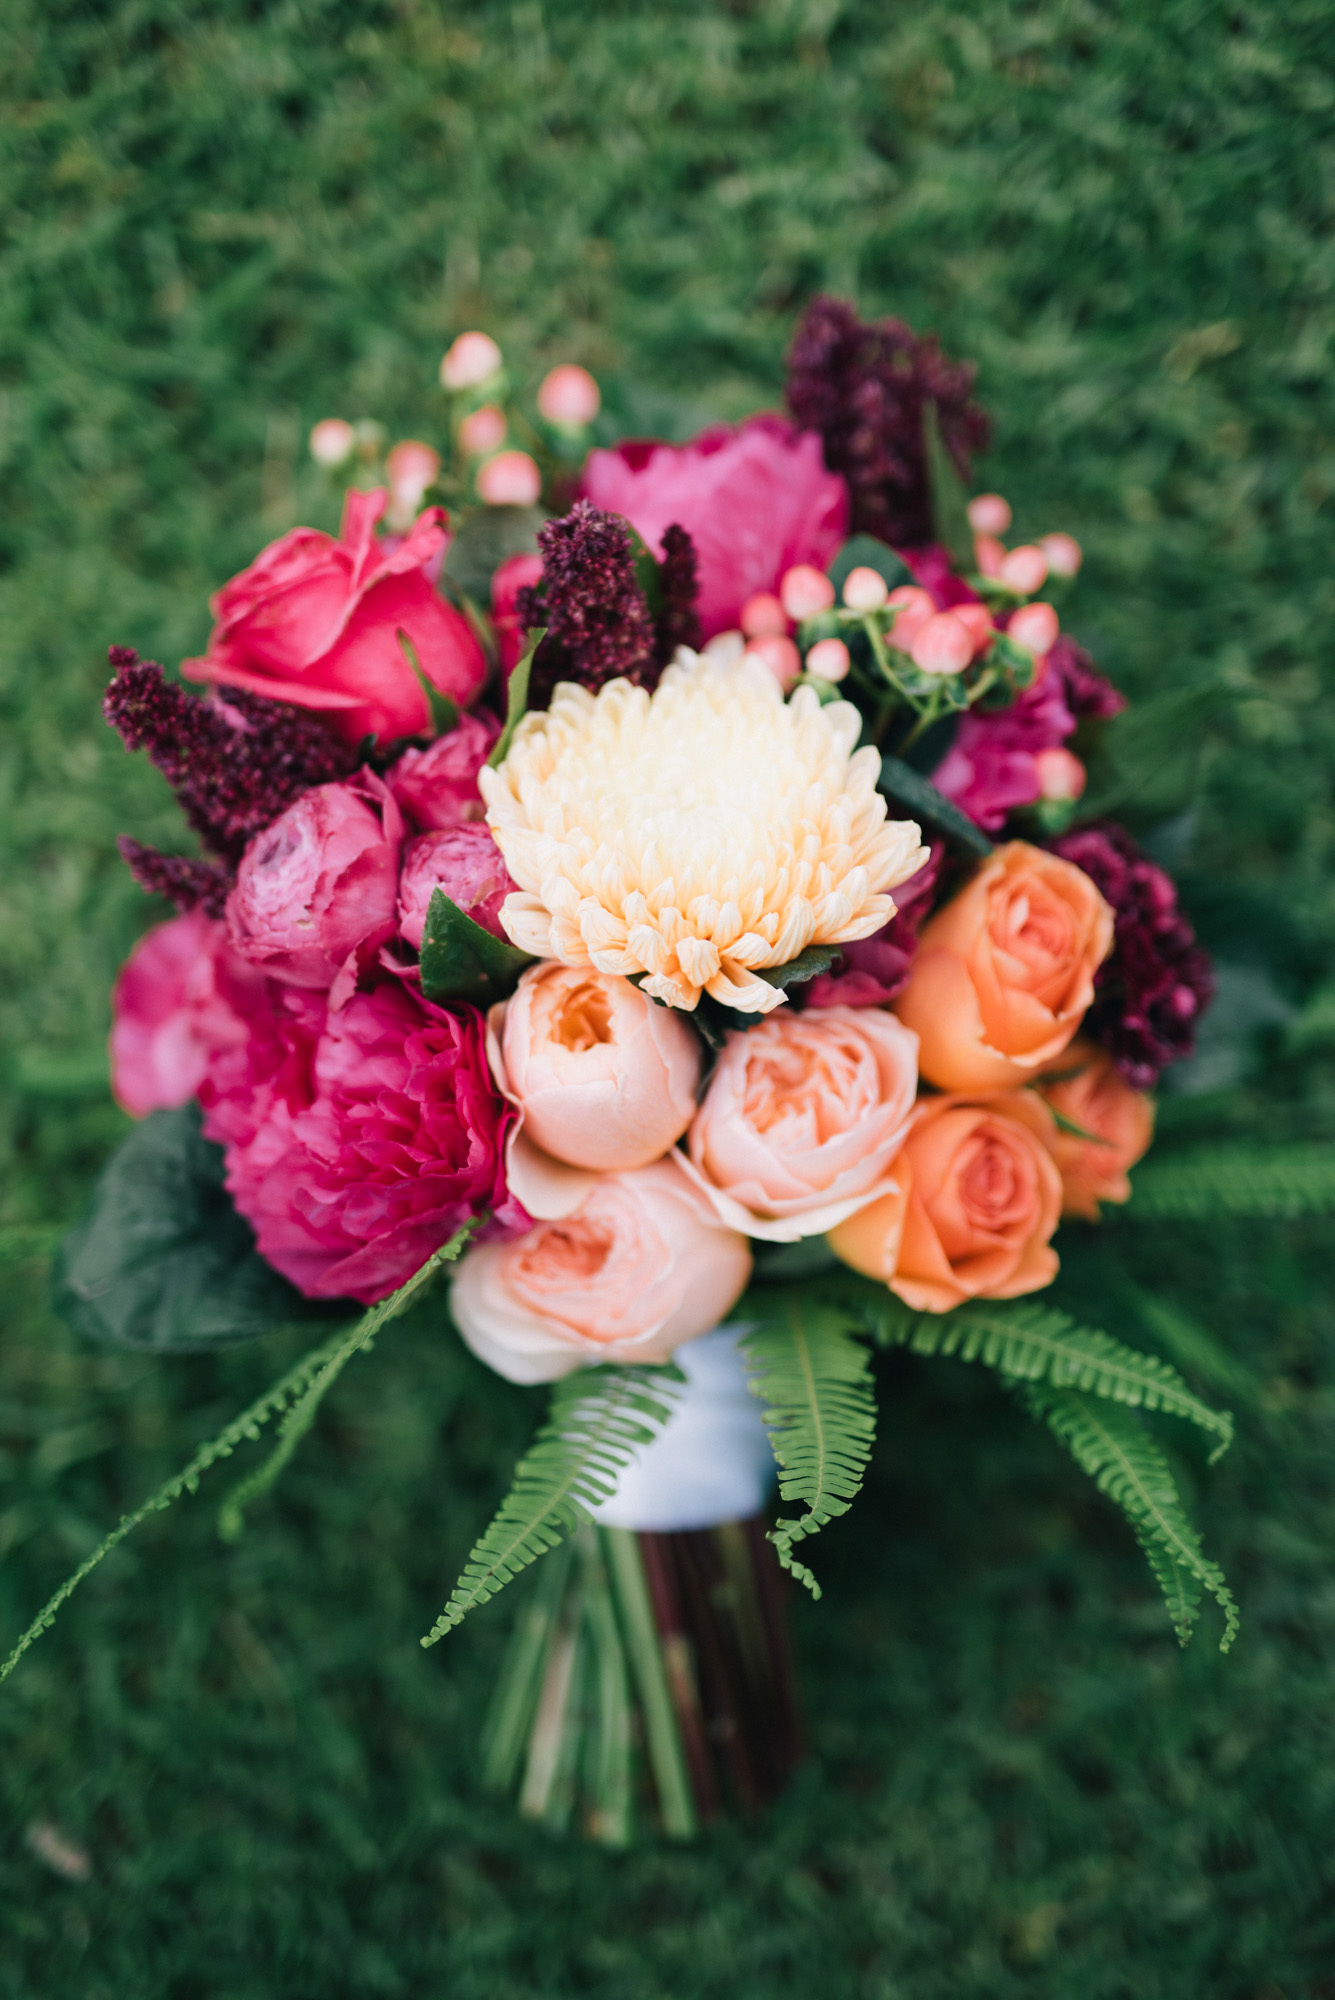 How to Choose the Best Wedding Florist and Flowers Image 3